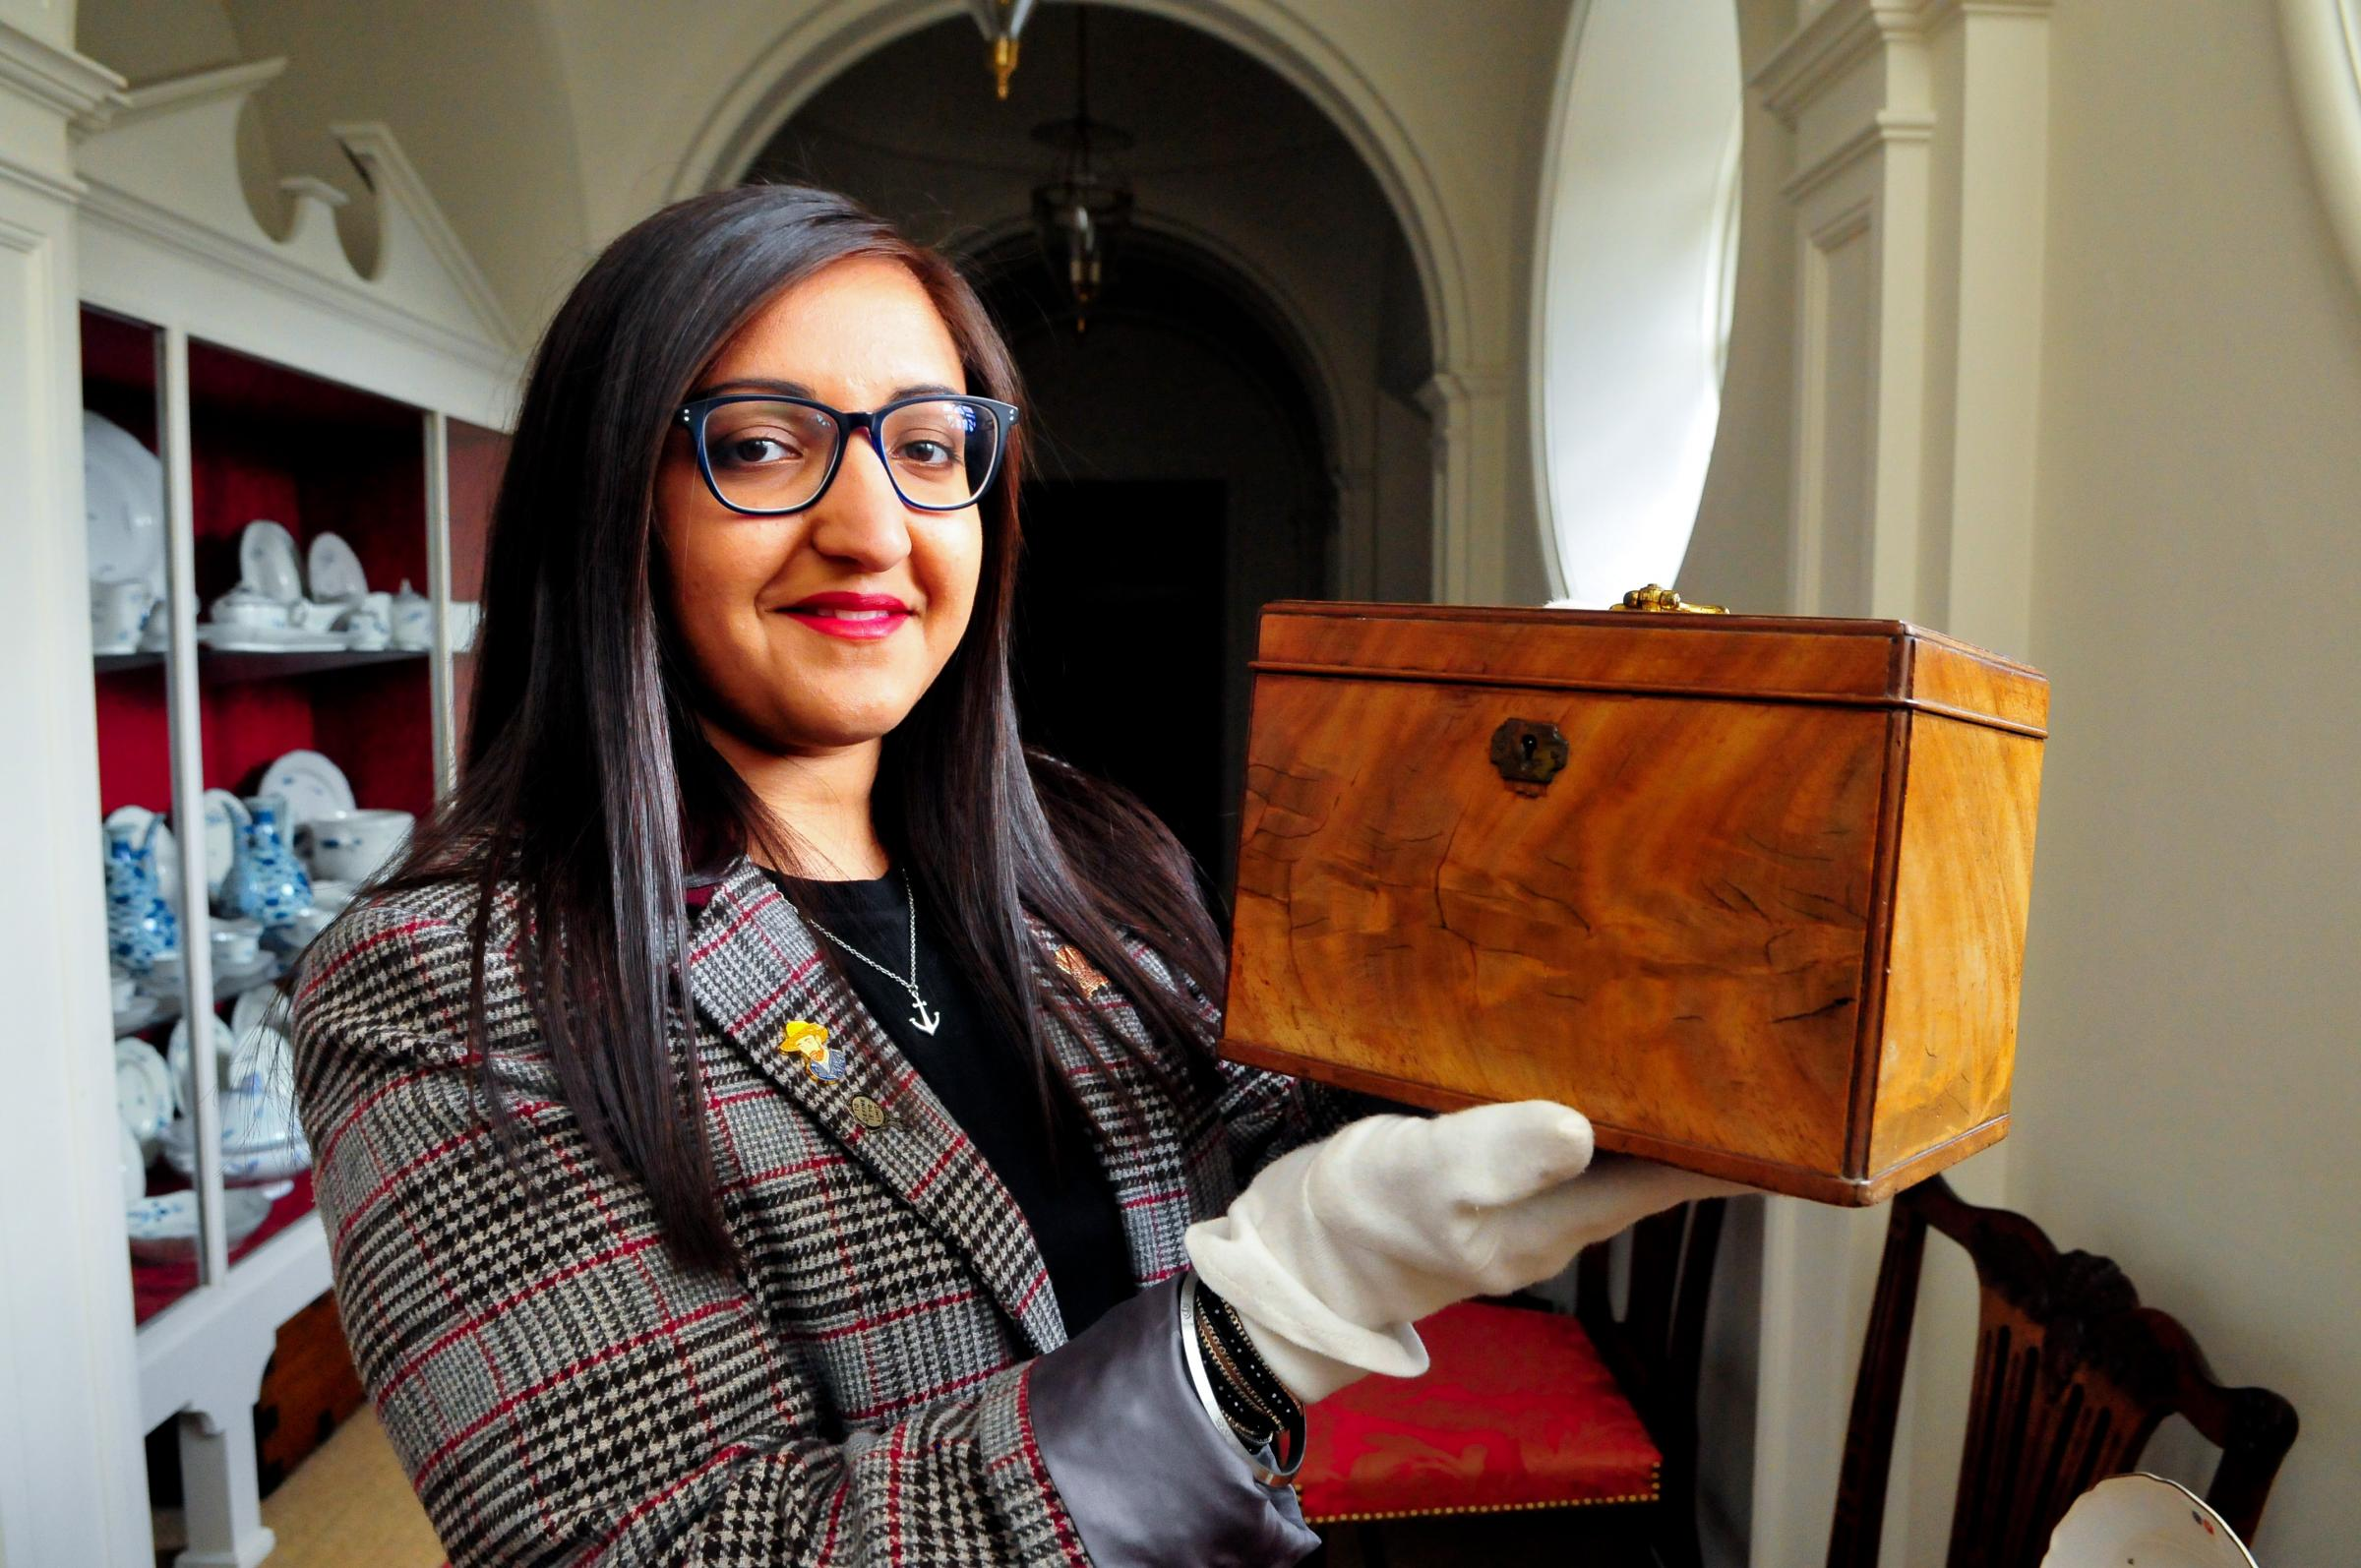 Dumfries House lass Satinder Kaur has been appointed as the new collections assistant at Dumfries House